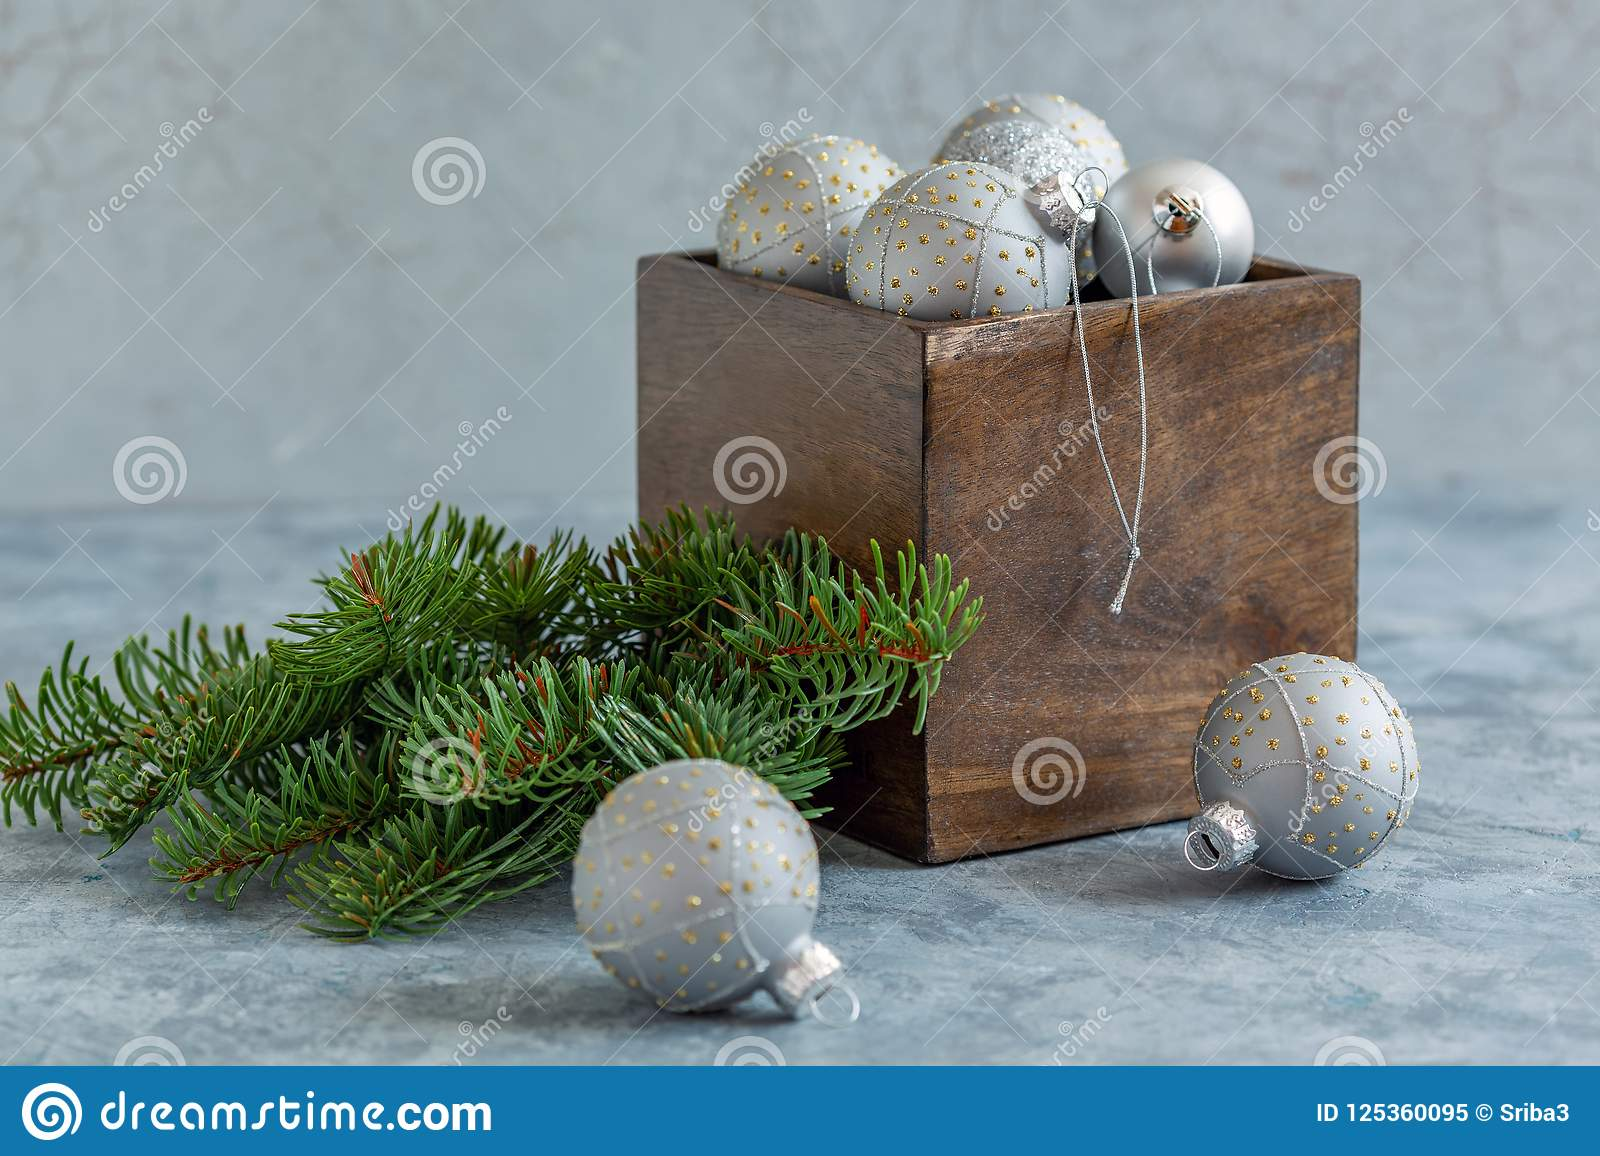 Christmas silver balls in an old wooden box.